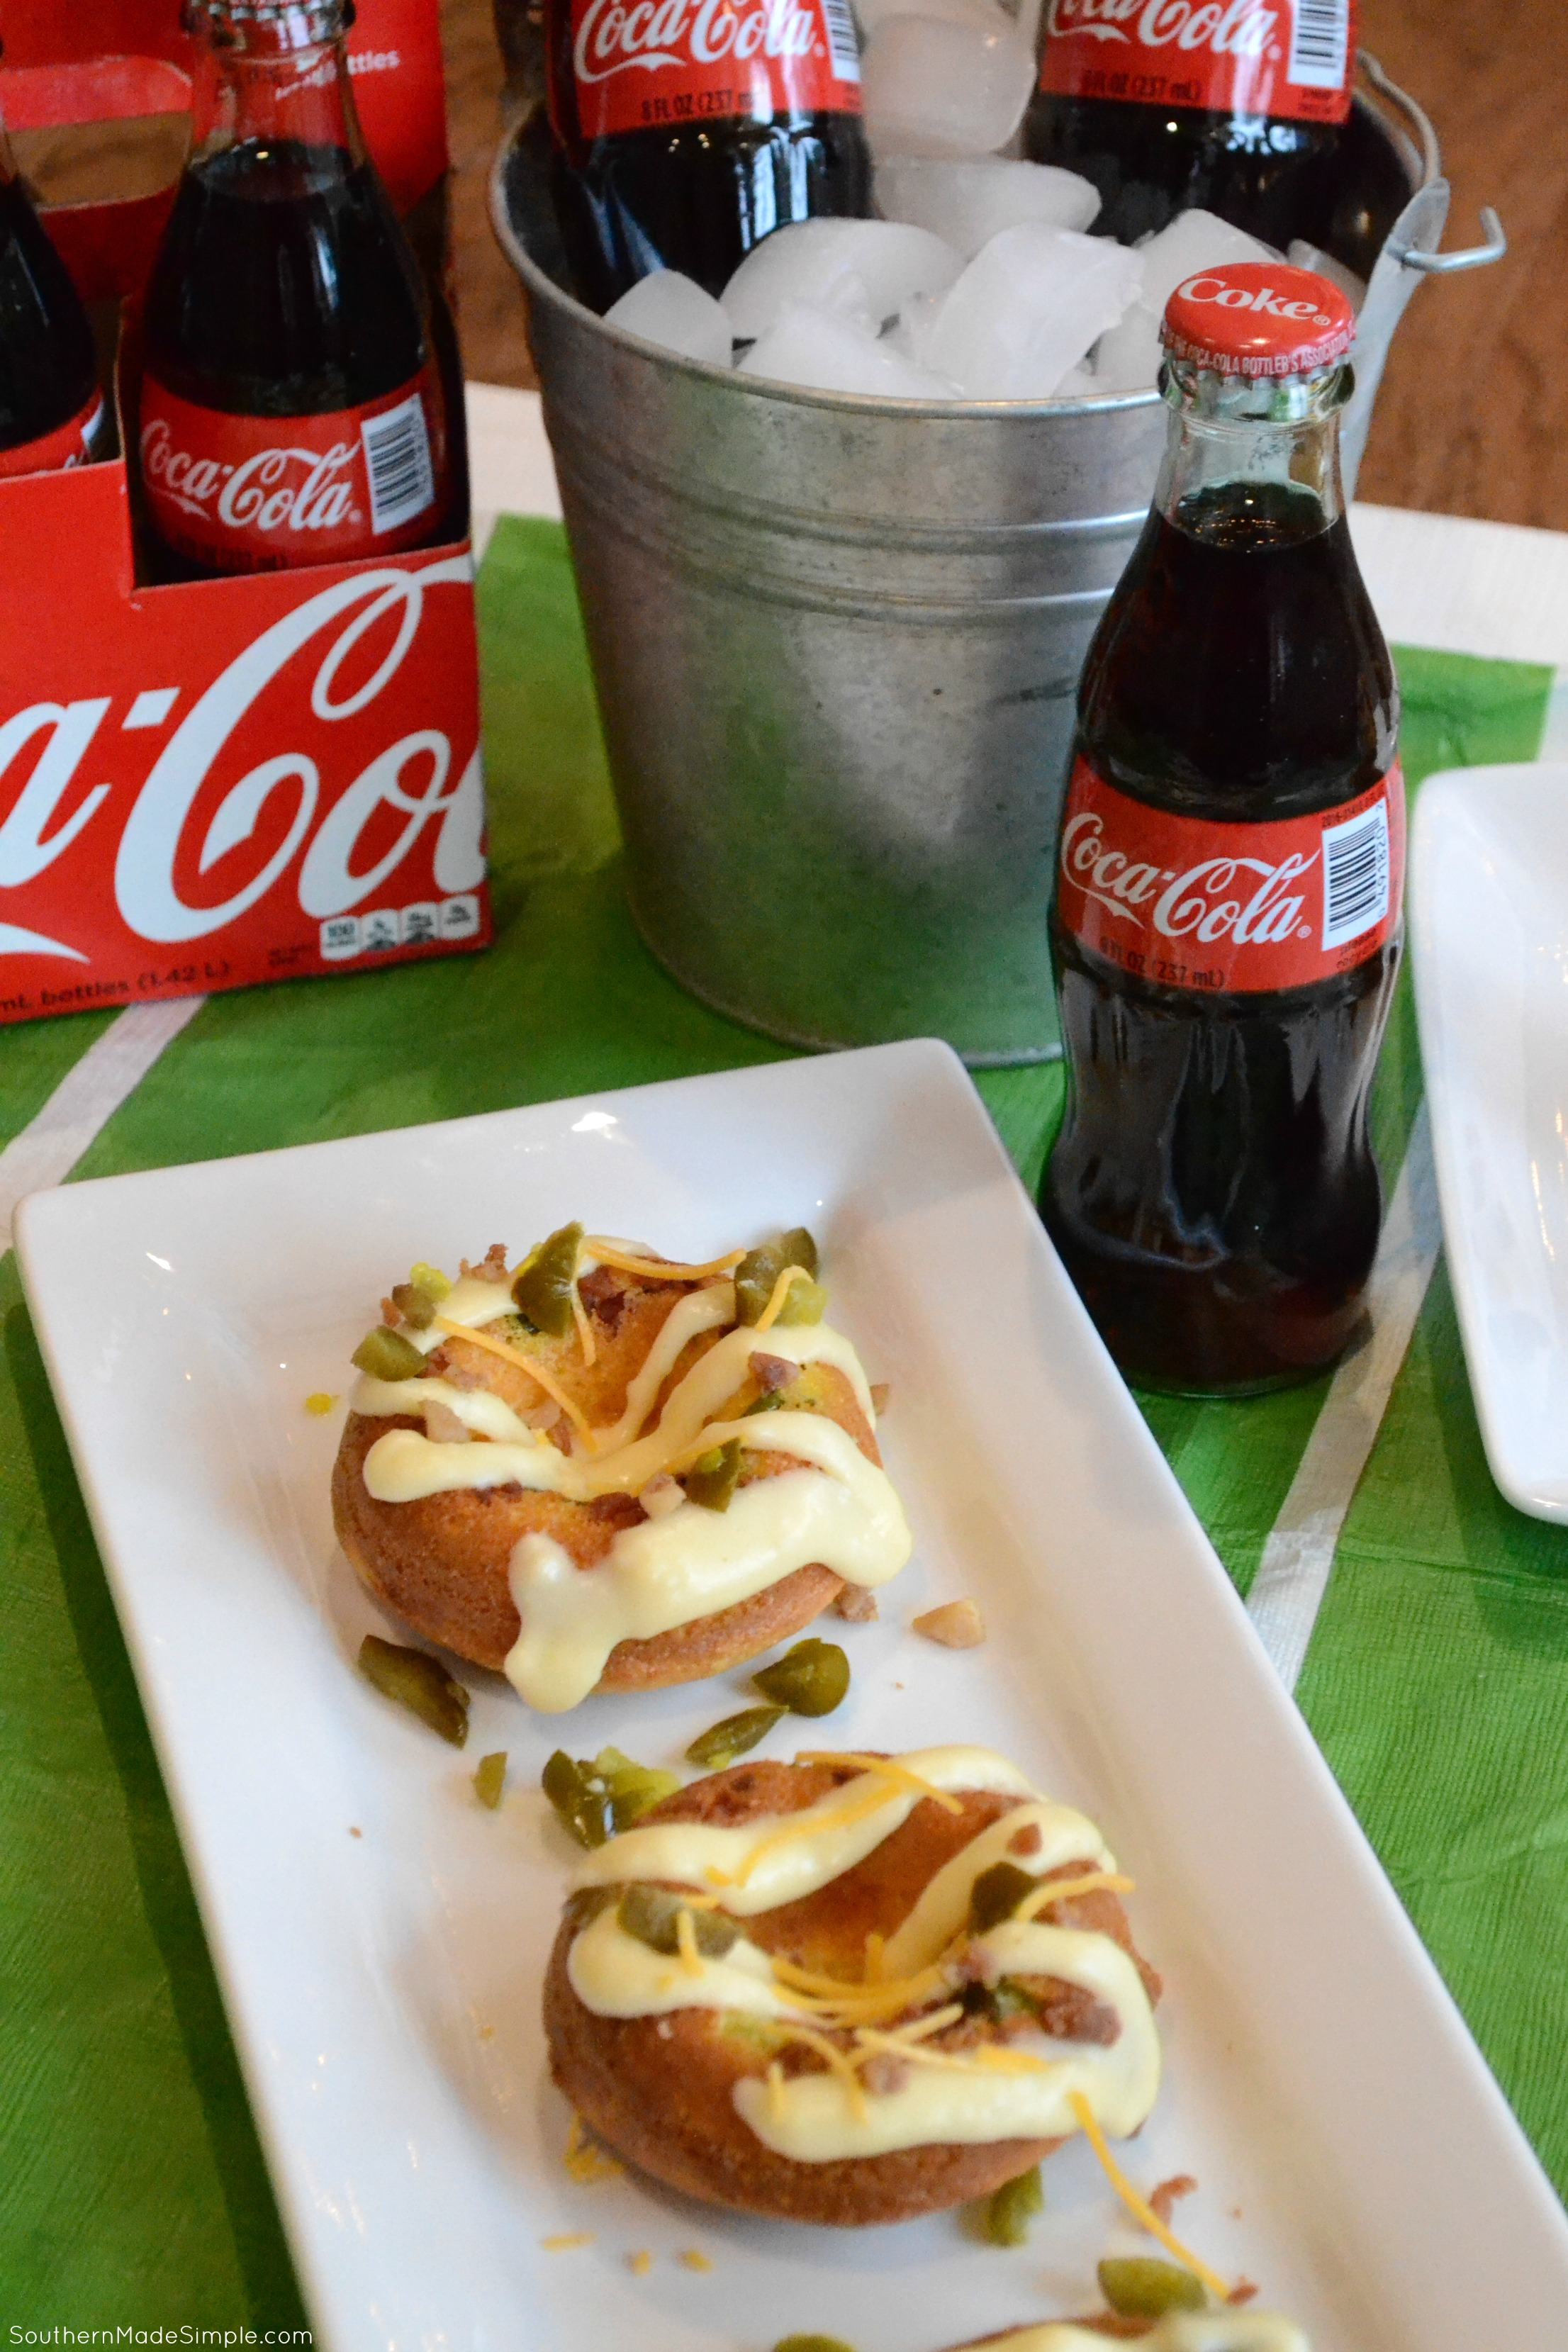 Serve up some spicy goodness during the big game with these savory Cheddar Bacon Jalapeno Doughnuts! They're a cheesy cornbread base with a spicy jalapeno cheese sauce that is in a league of it's own! Pair it with an ice cold Coca-Cola and you've got a winning hand! #ServeWithACoke #BowlGames #CollectiveBias